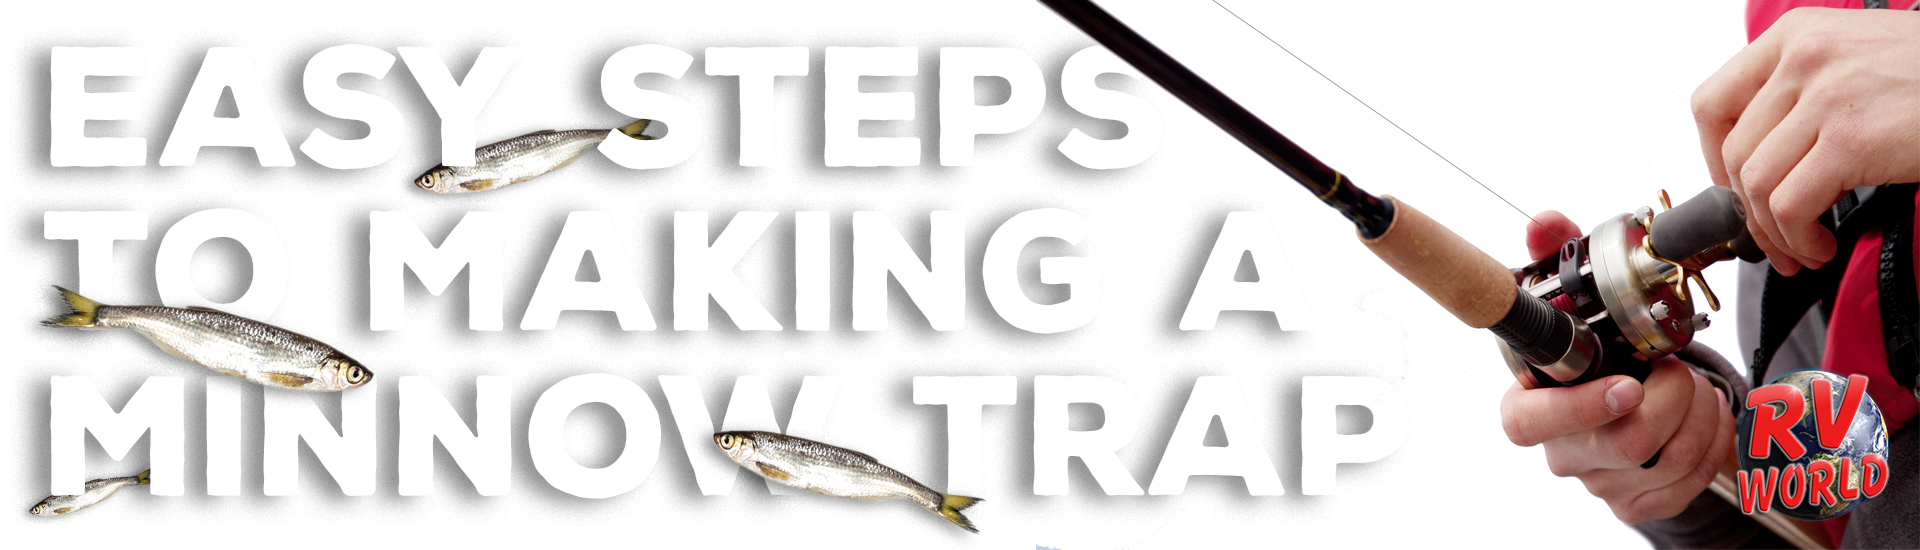 Easy Steps To Making A Minnow Trap Rv World Blog